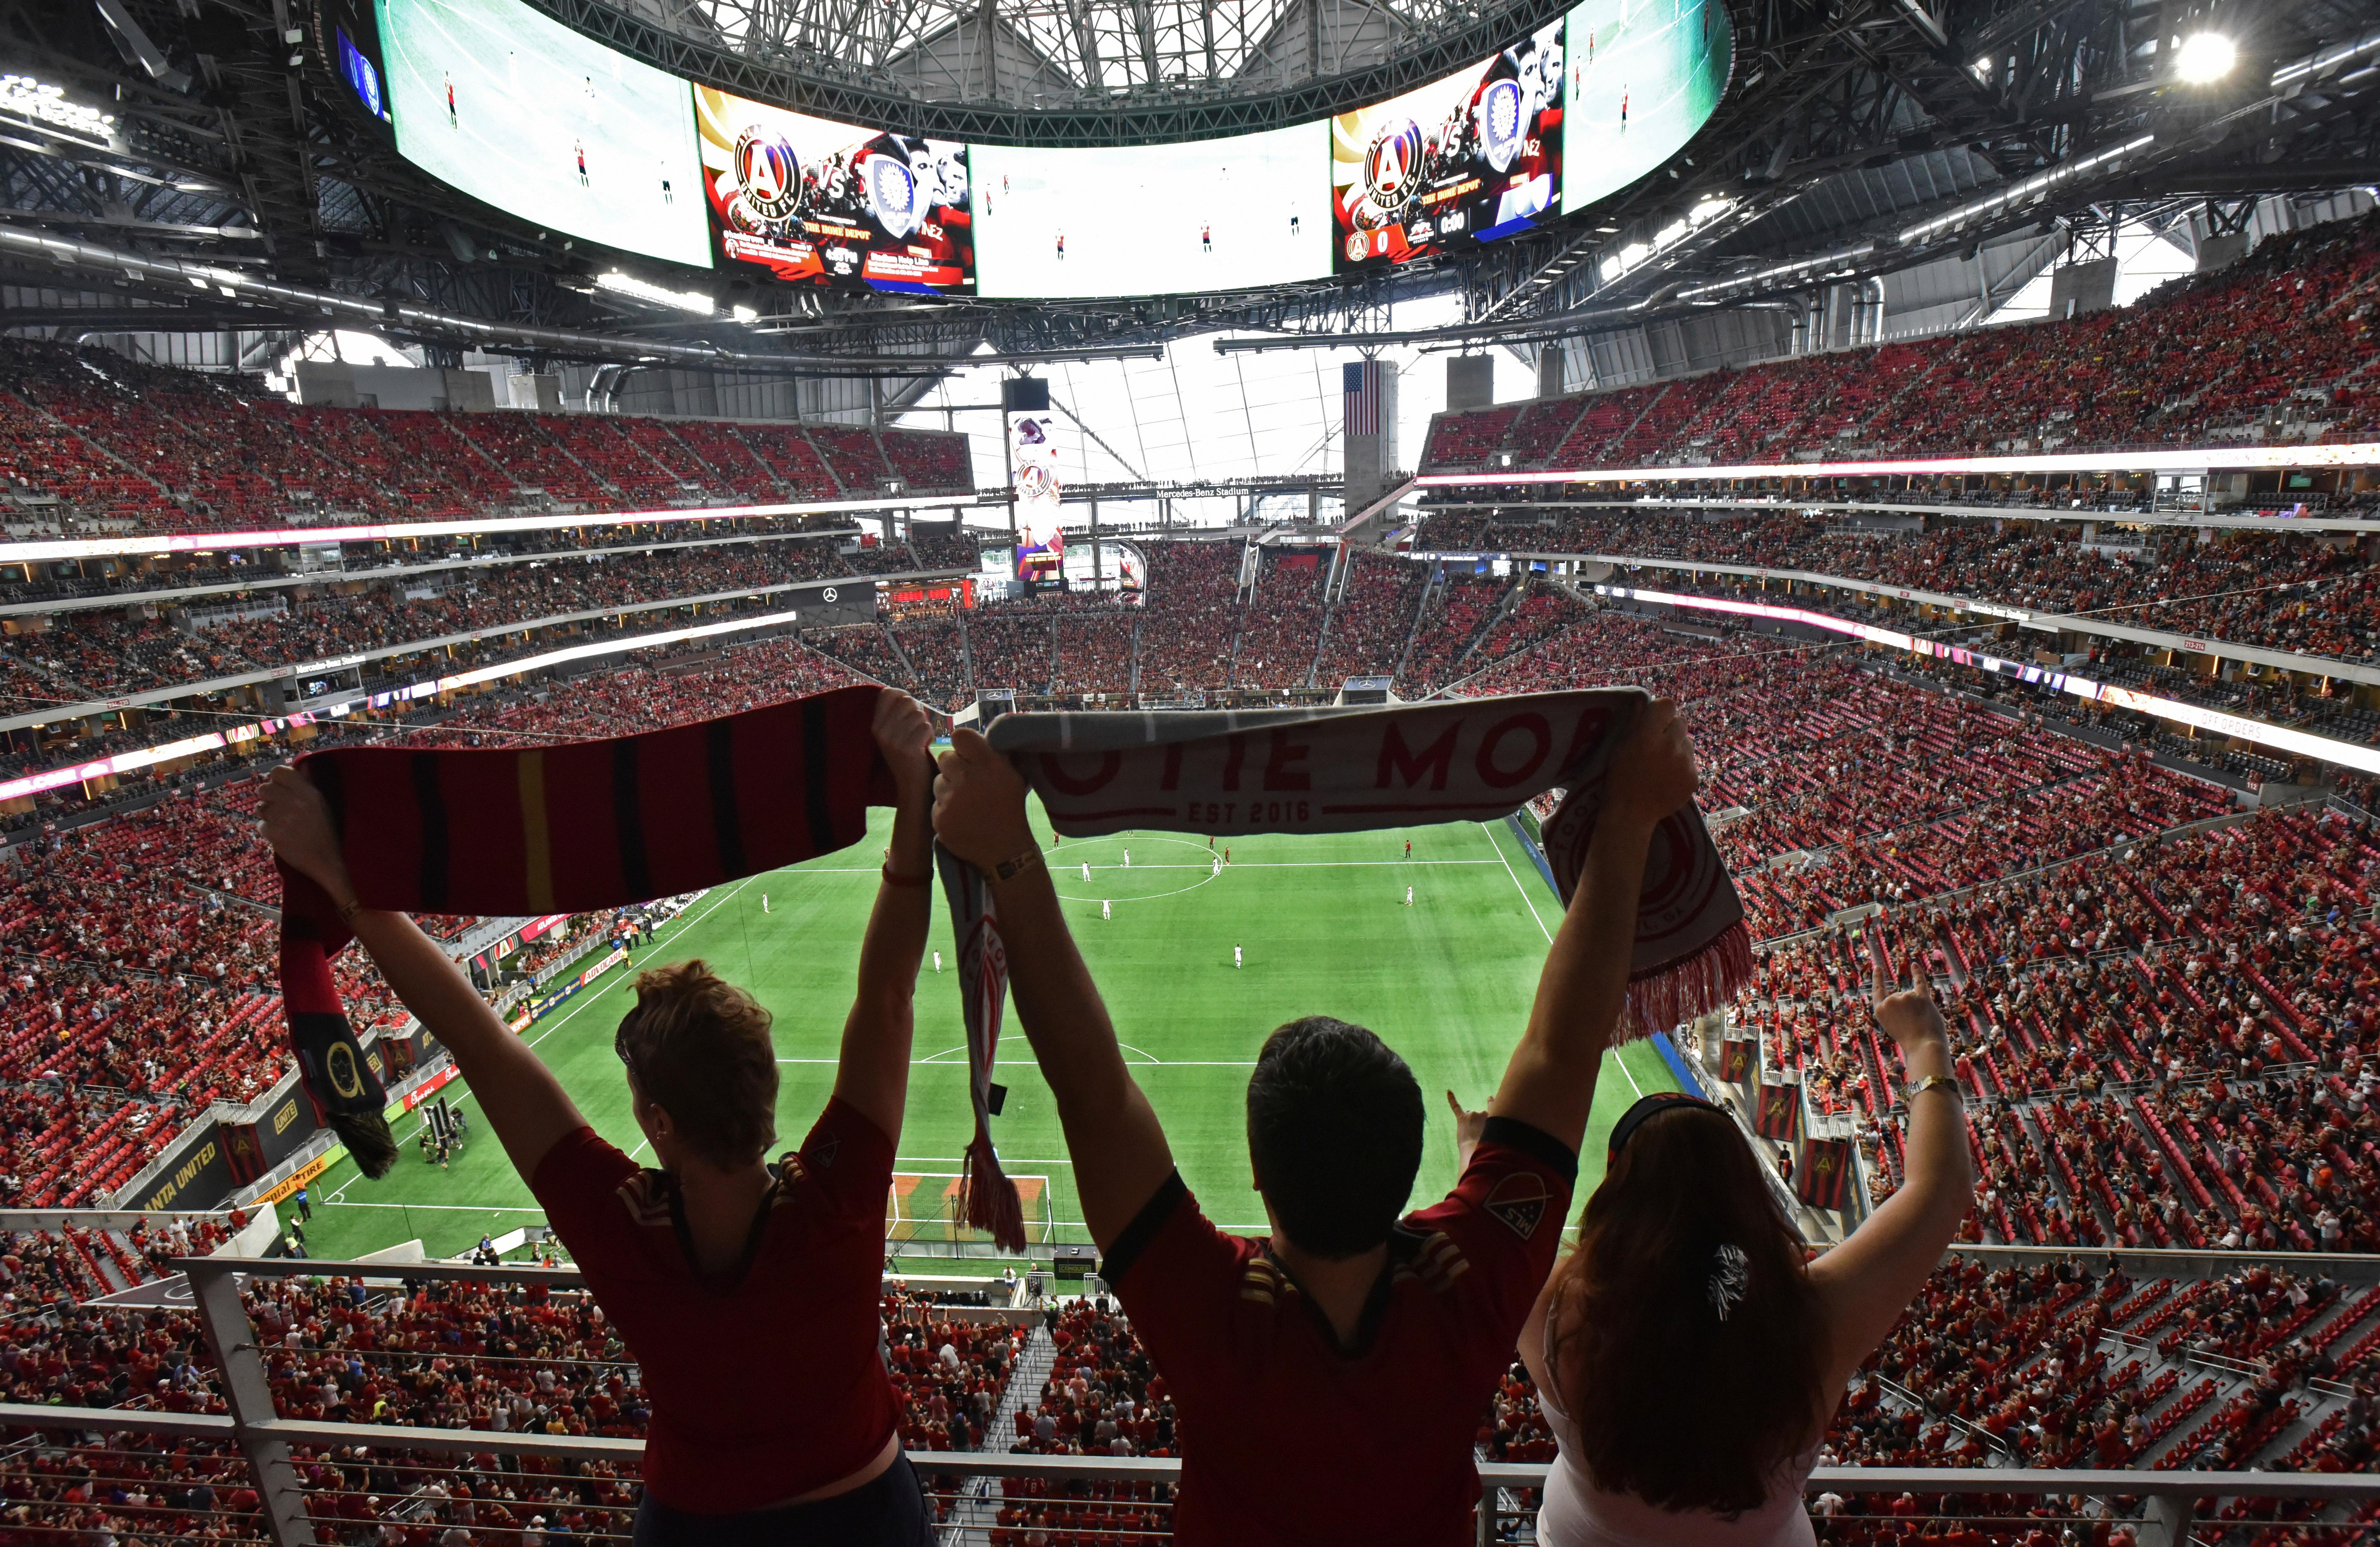 FILE - In this Sept. 16, 2017, file photo, Atlanta United fans cheer for their team before an MLS soccer match against the Orlando City in Atlanta. Welcome to Atlanta, soccer's newest hotbed, which amazingly enough has sprouted up in a city known for its fickle sports fans and plenty of heartbreak from its teams.  (Hyosub Shin/Atlanta Journal-Constitution via AP, File)